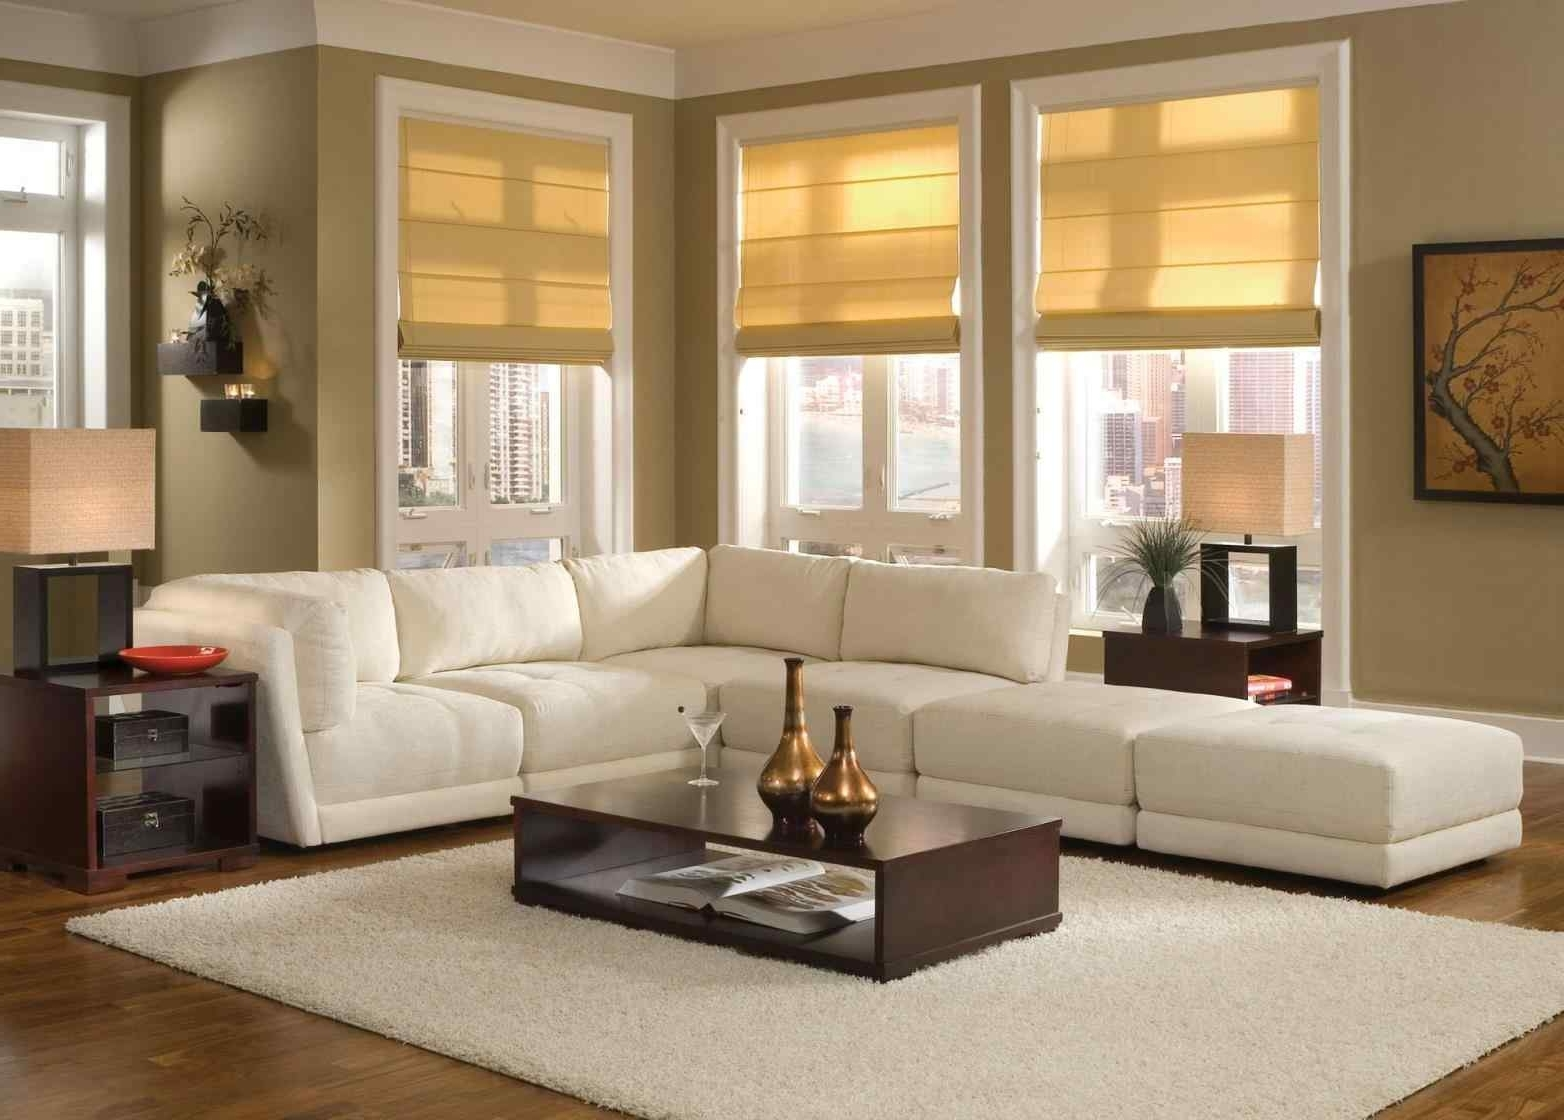 The Images Collection Of Designing Incredible Living Room With Well Known Sectional Sofas Decorating (View 6 of 20)